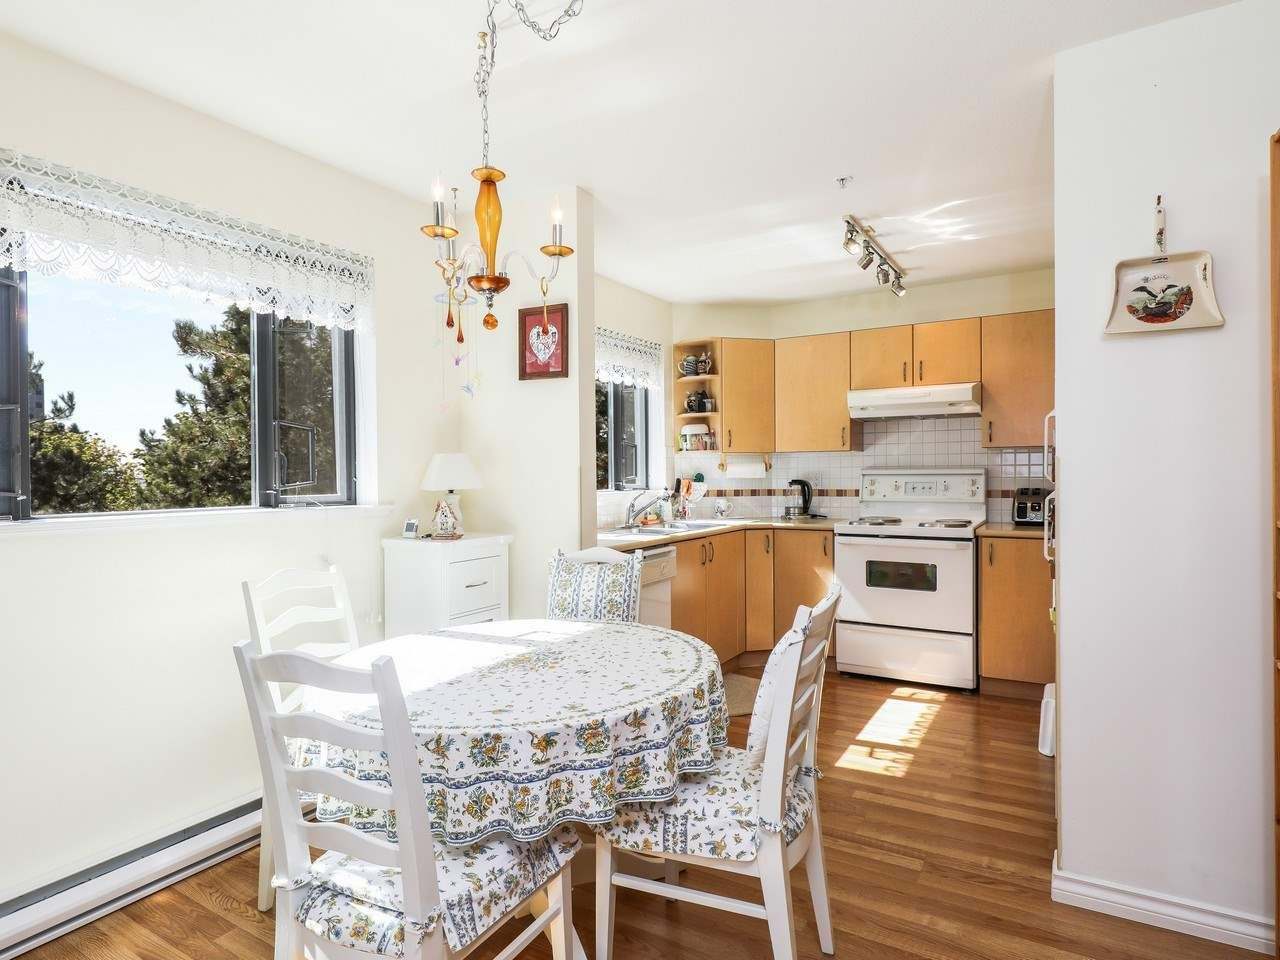 Main Photo: 209 175 E 10TH STREET in North Vancouver: Central Lonsdale Condo for sale : MLS®# R2203480